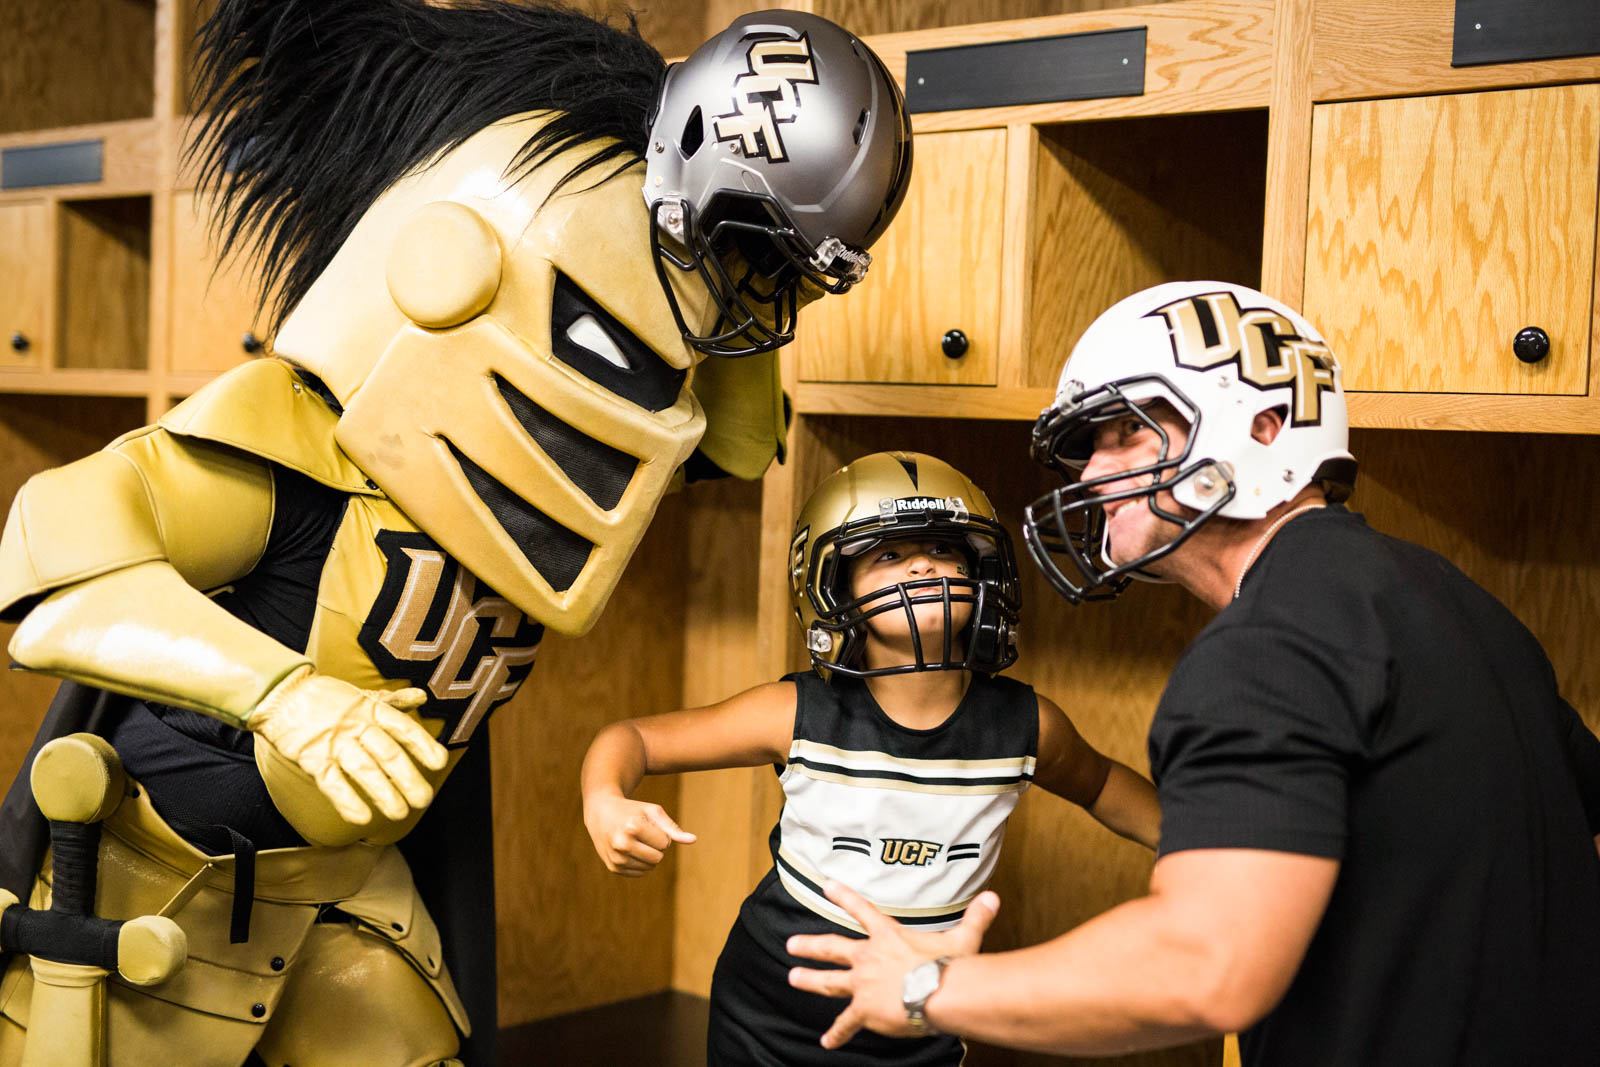 ucf-best-of-photos-knightro-fan-fest